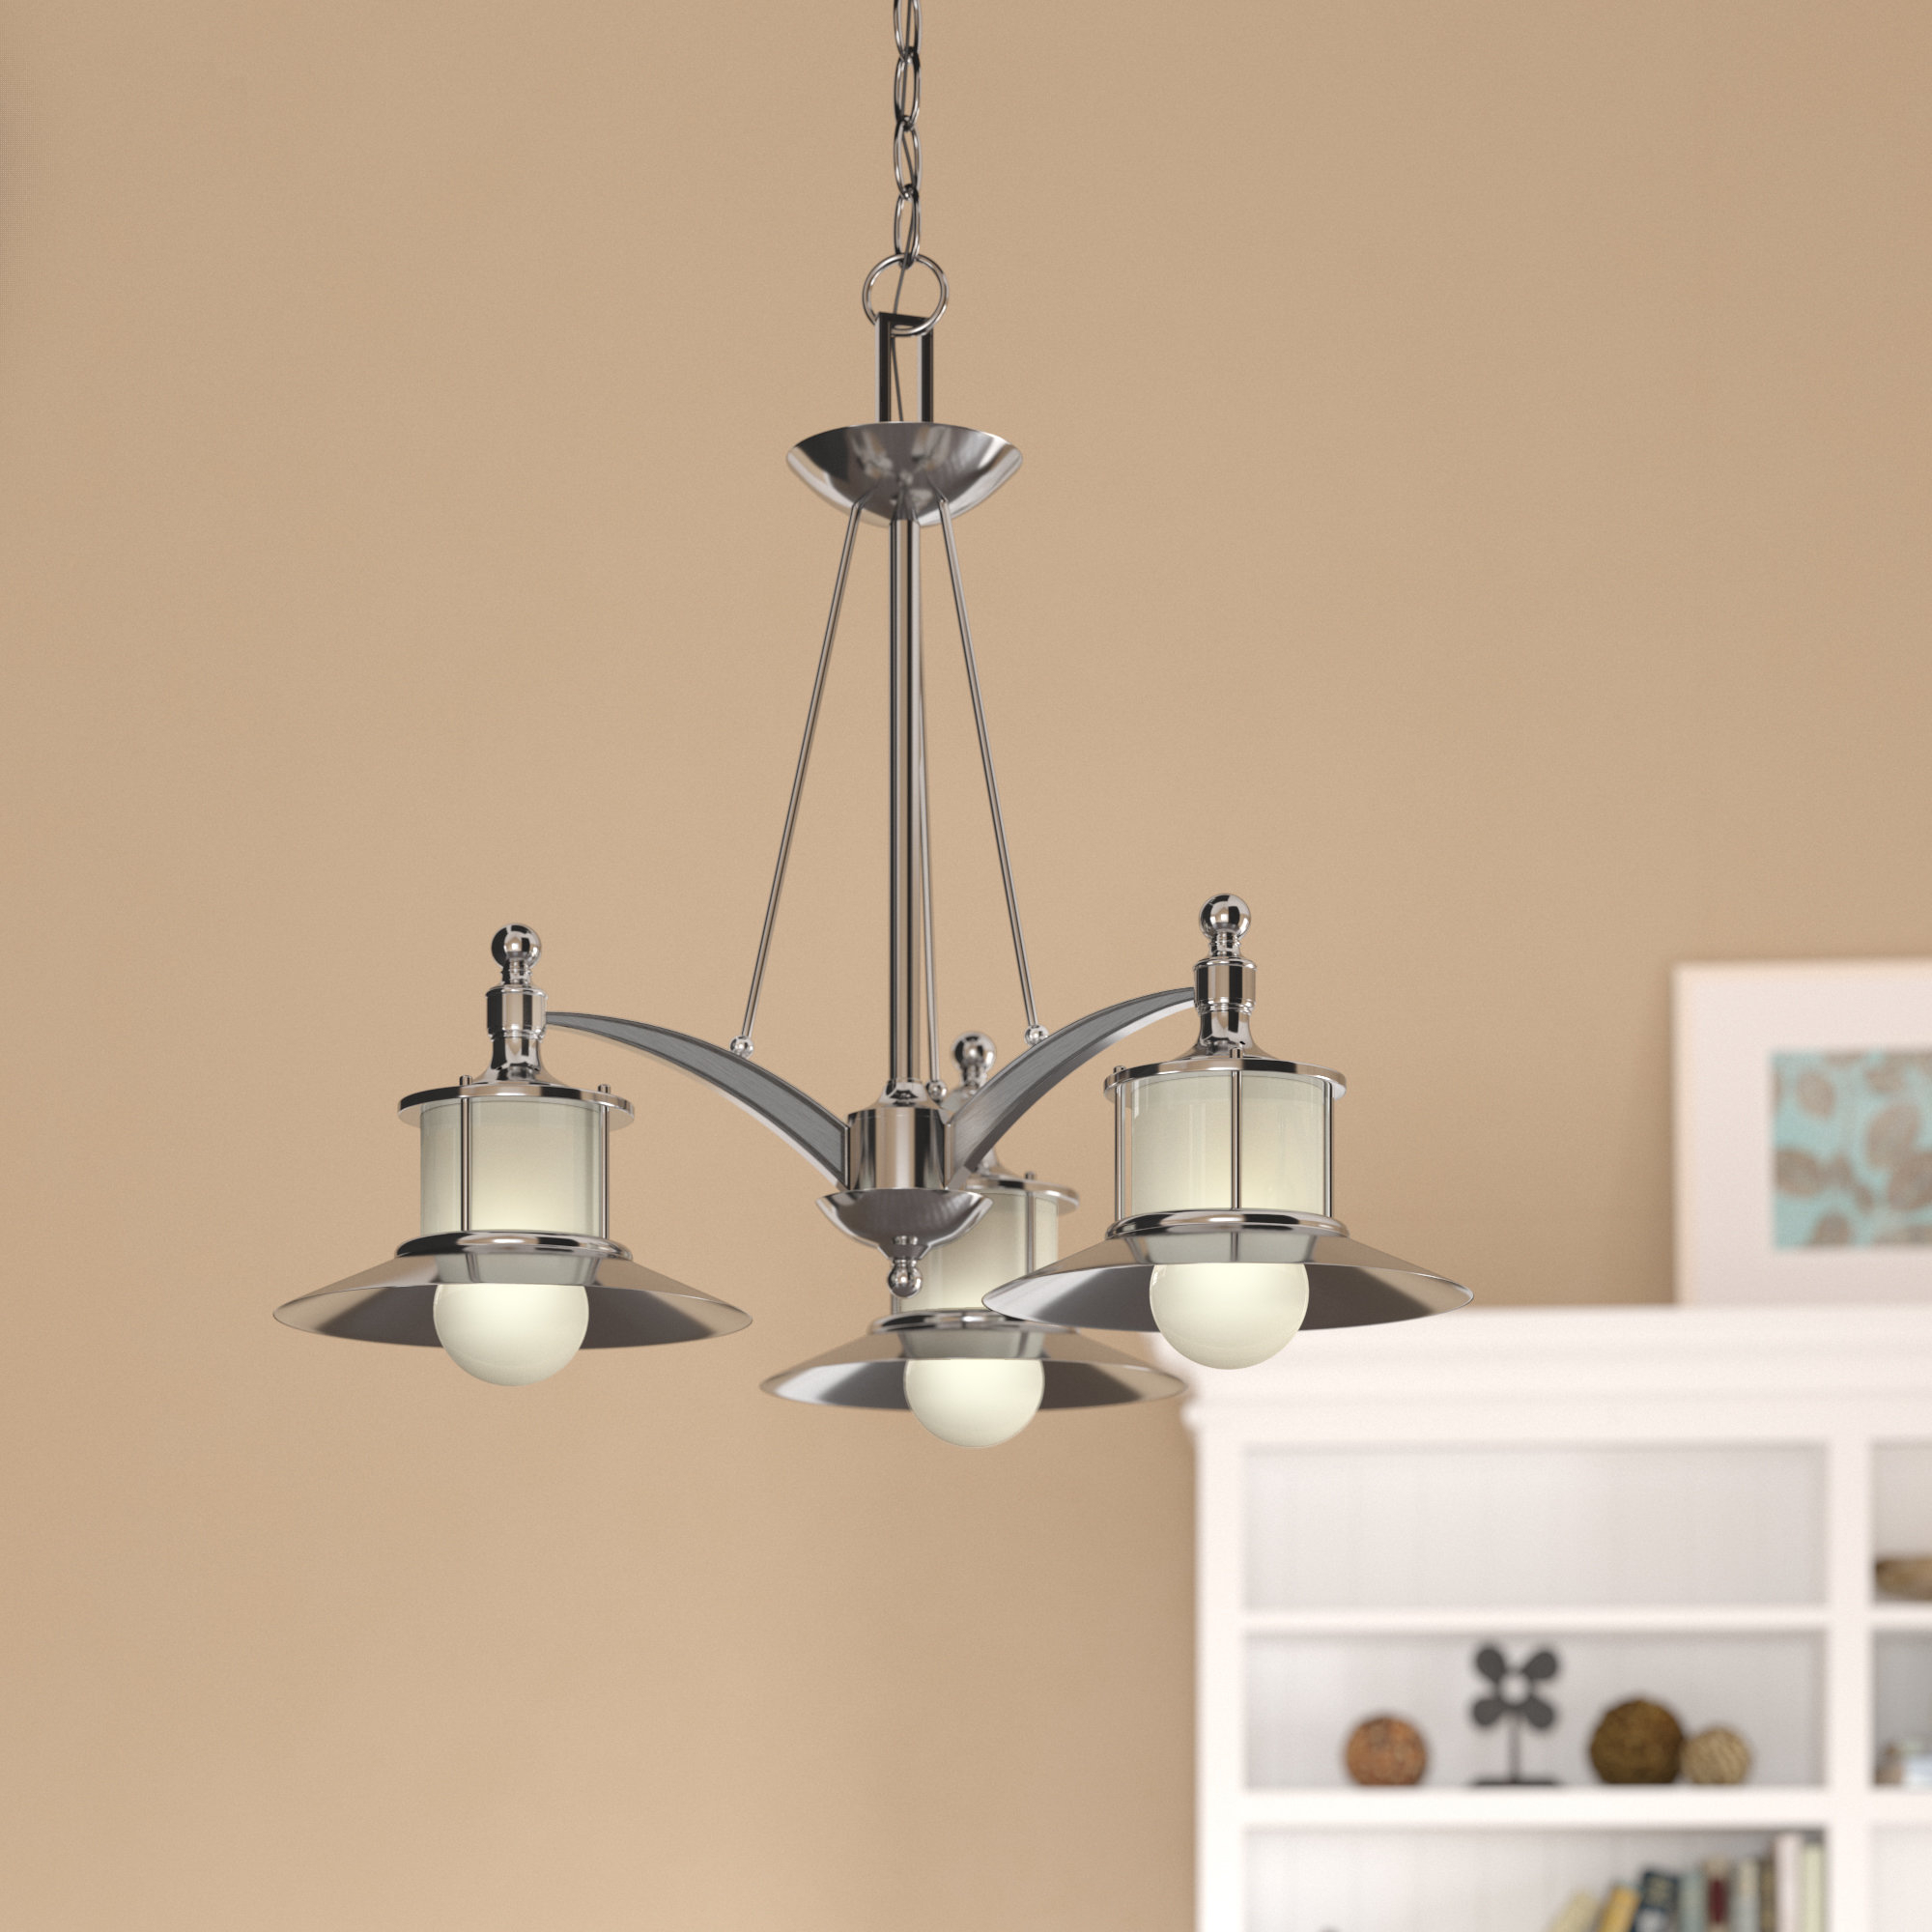 Newest Salley 3-Light Shaded Chandelier in Alayna 4-Light Shaded Chandeliers